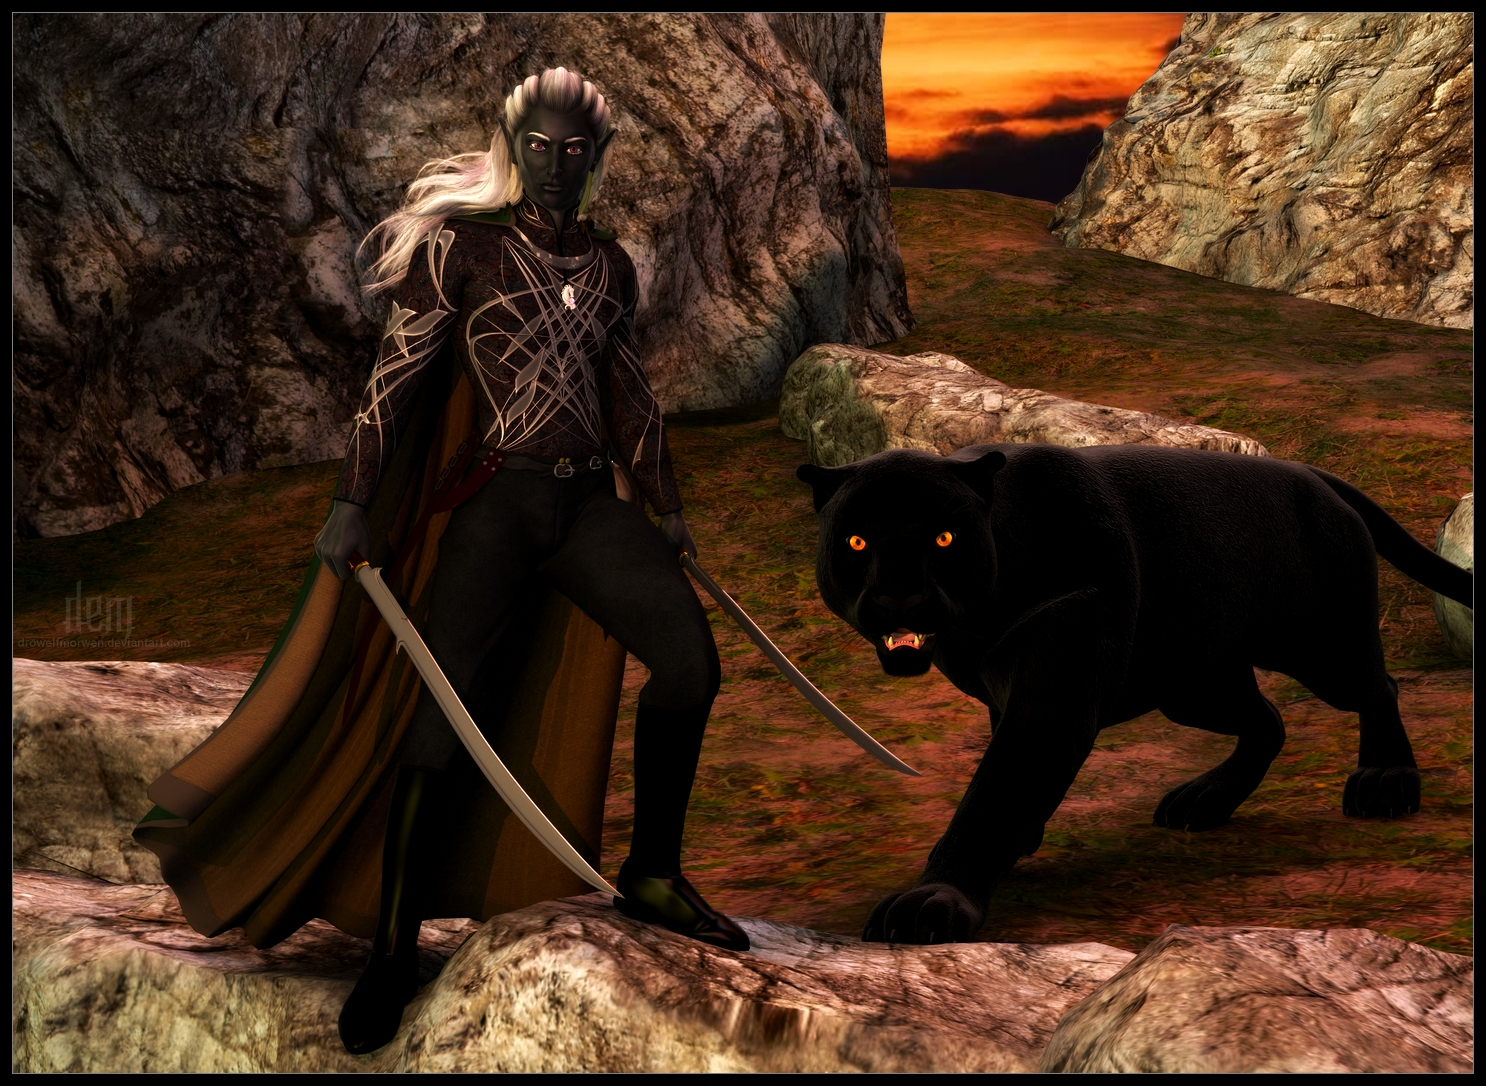 http://fc00.deviantart.net/fs71/f/2012/279/8/4/drizzt_do__urden_and_guenhwyvar____twilight_by_drowelfmorwen-d5gd40x.jpg